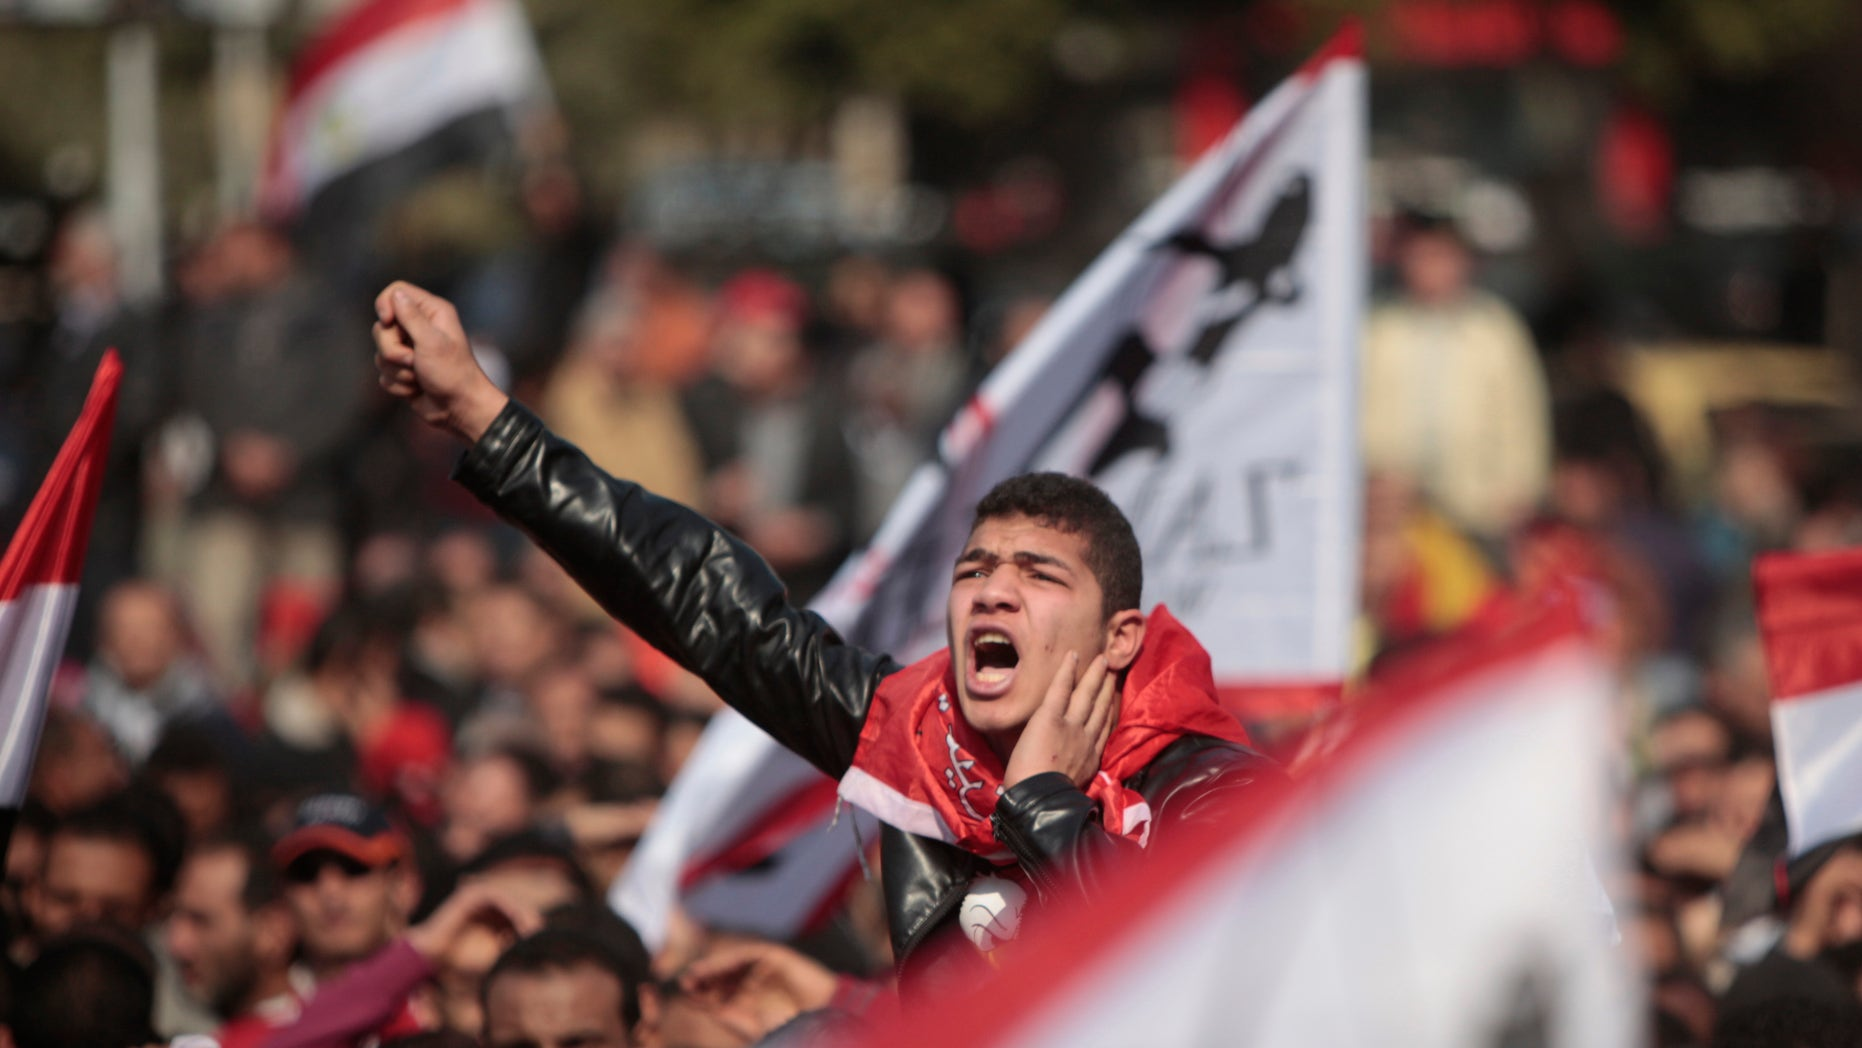 Feb. 2, 2012: An Egyptian soccer fan shouts anti-ruling military council slogans during a protest at Sphinx square in Cairo, Egypt, against killing of at least 74 people in the country's worst ever soccer violence.